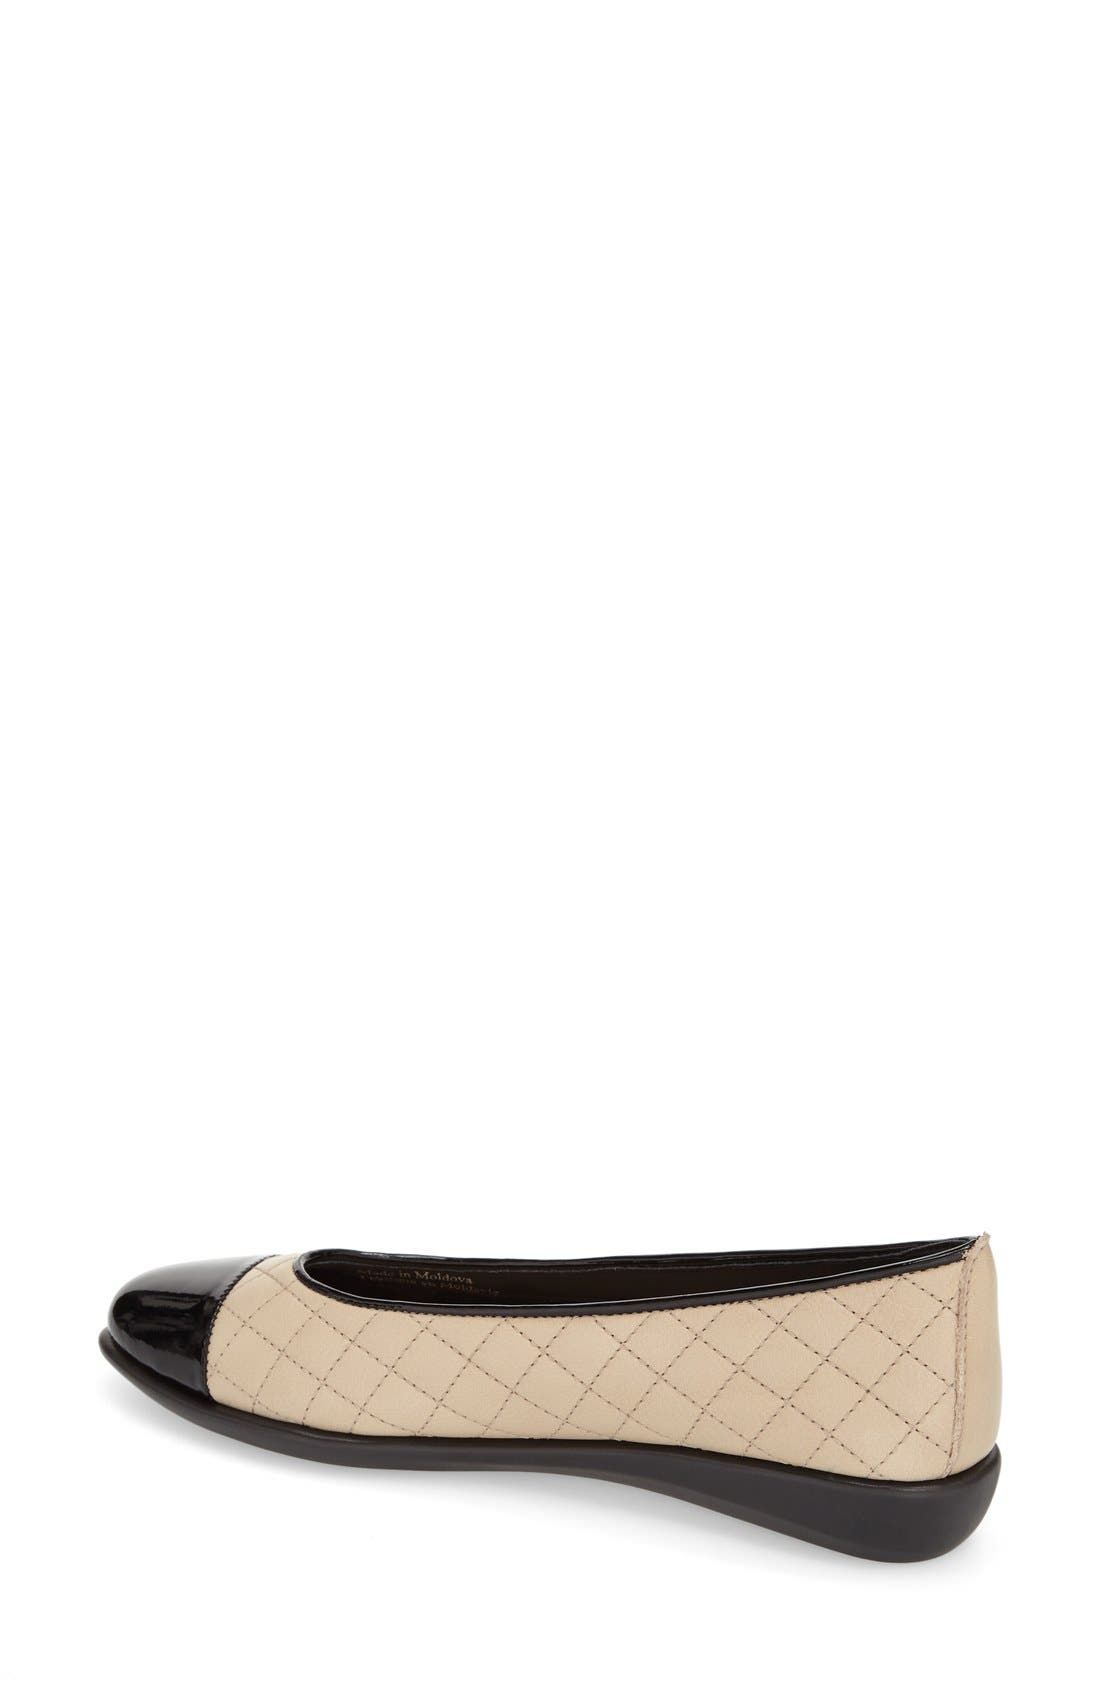 Alternate Image 2  - The FLEXX 'Rise a Smile' Quilted Leather Flat (Women)